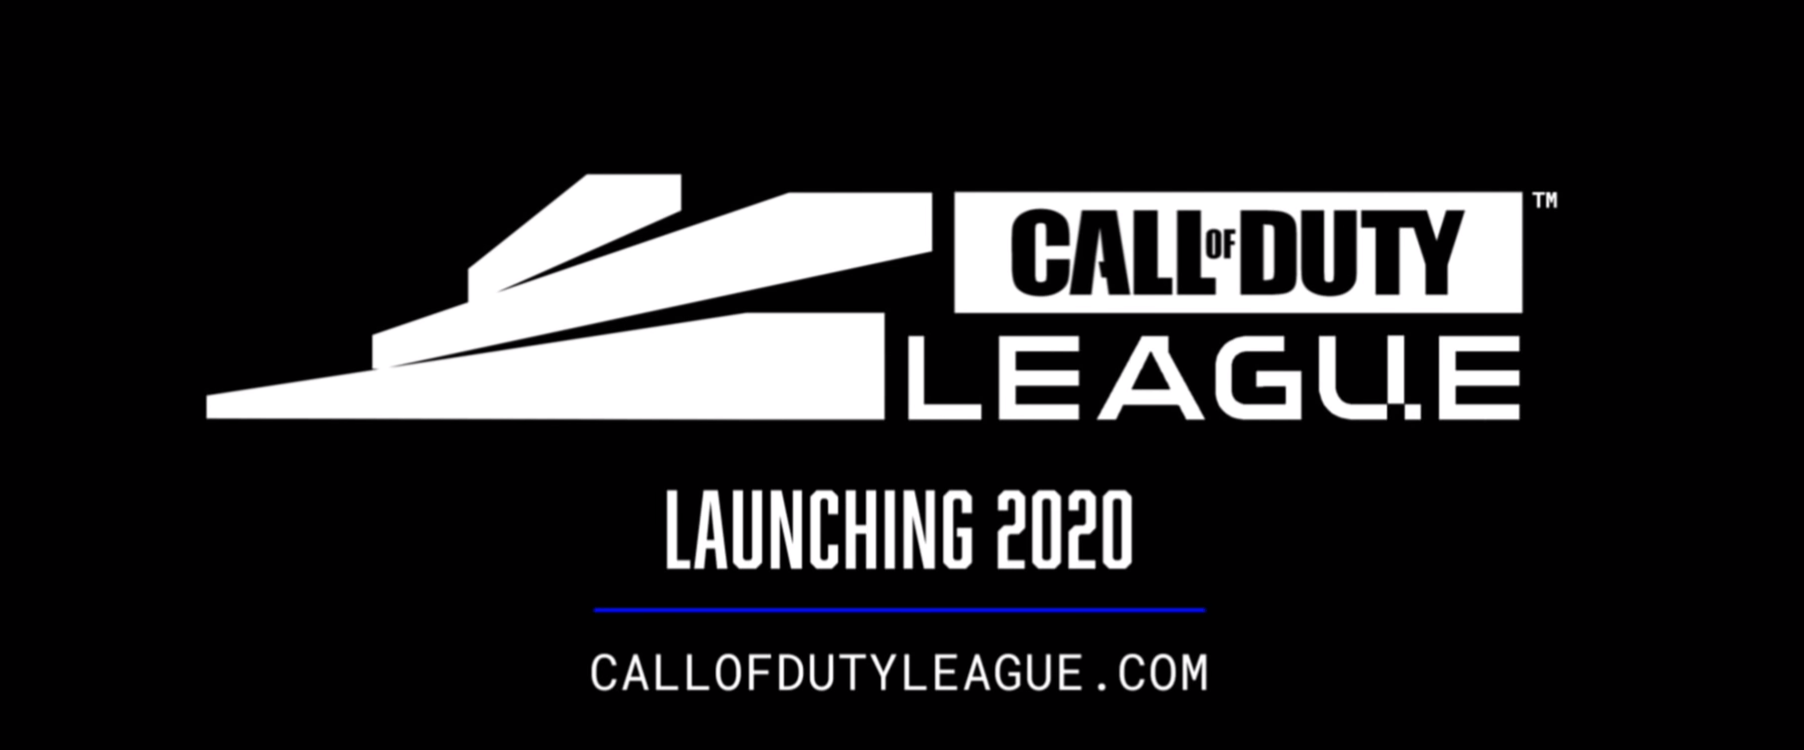 Call Of Duty League Official 2020 Schedule Has Been Released, 24 Events Altogether, Starting January 24